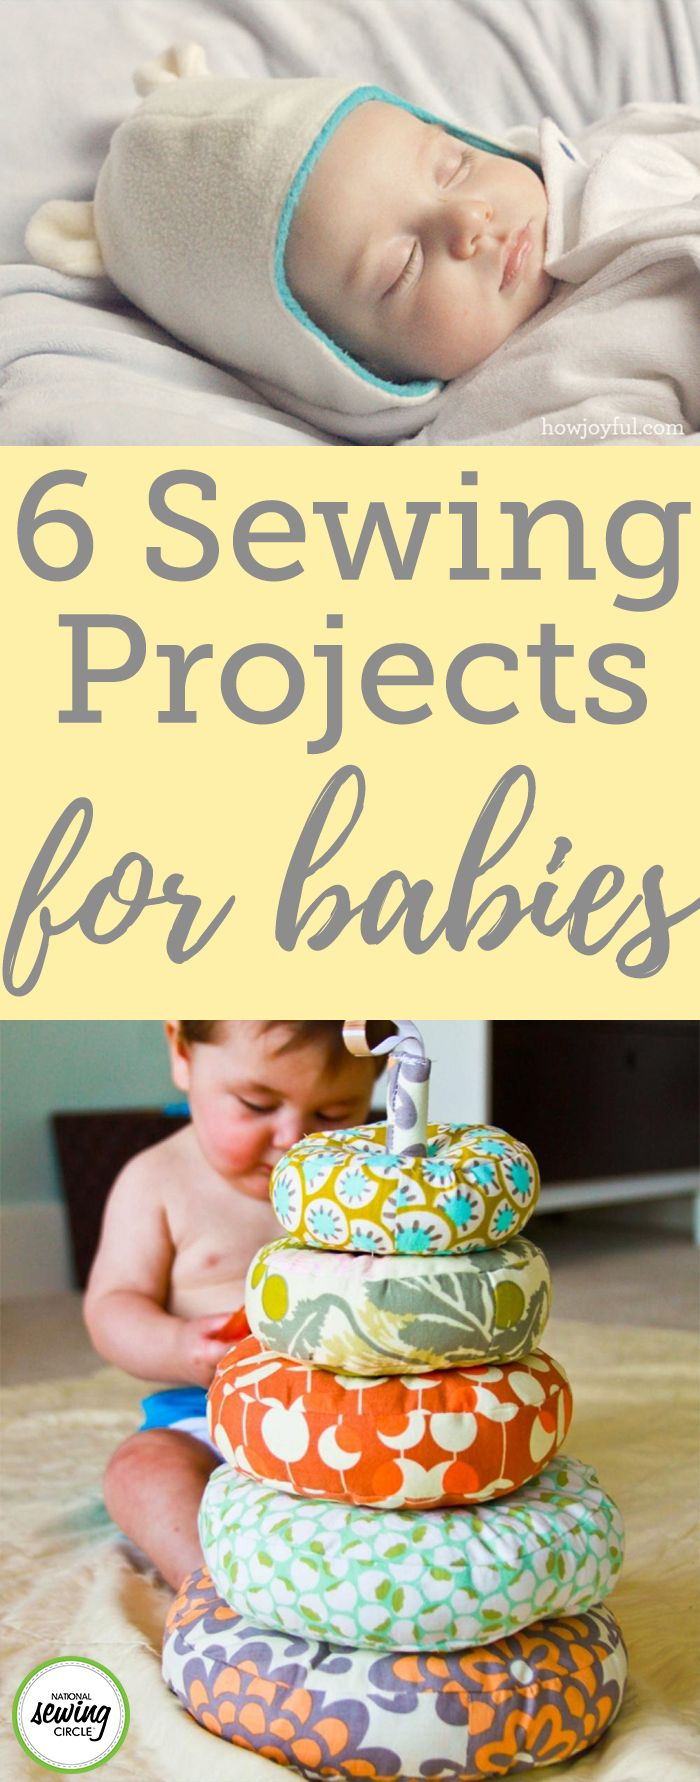 Expecting a grandchild, niece, nephew, or baby of your own? We've found some fun project ideas you can make for the baby in your life. Creating a gift by hand just seems to hold so much more meaning than a store bought present, no matter what your skill. Here you'll find projects for beginner sewers and seasoned sewers alike!